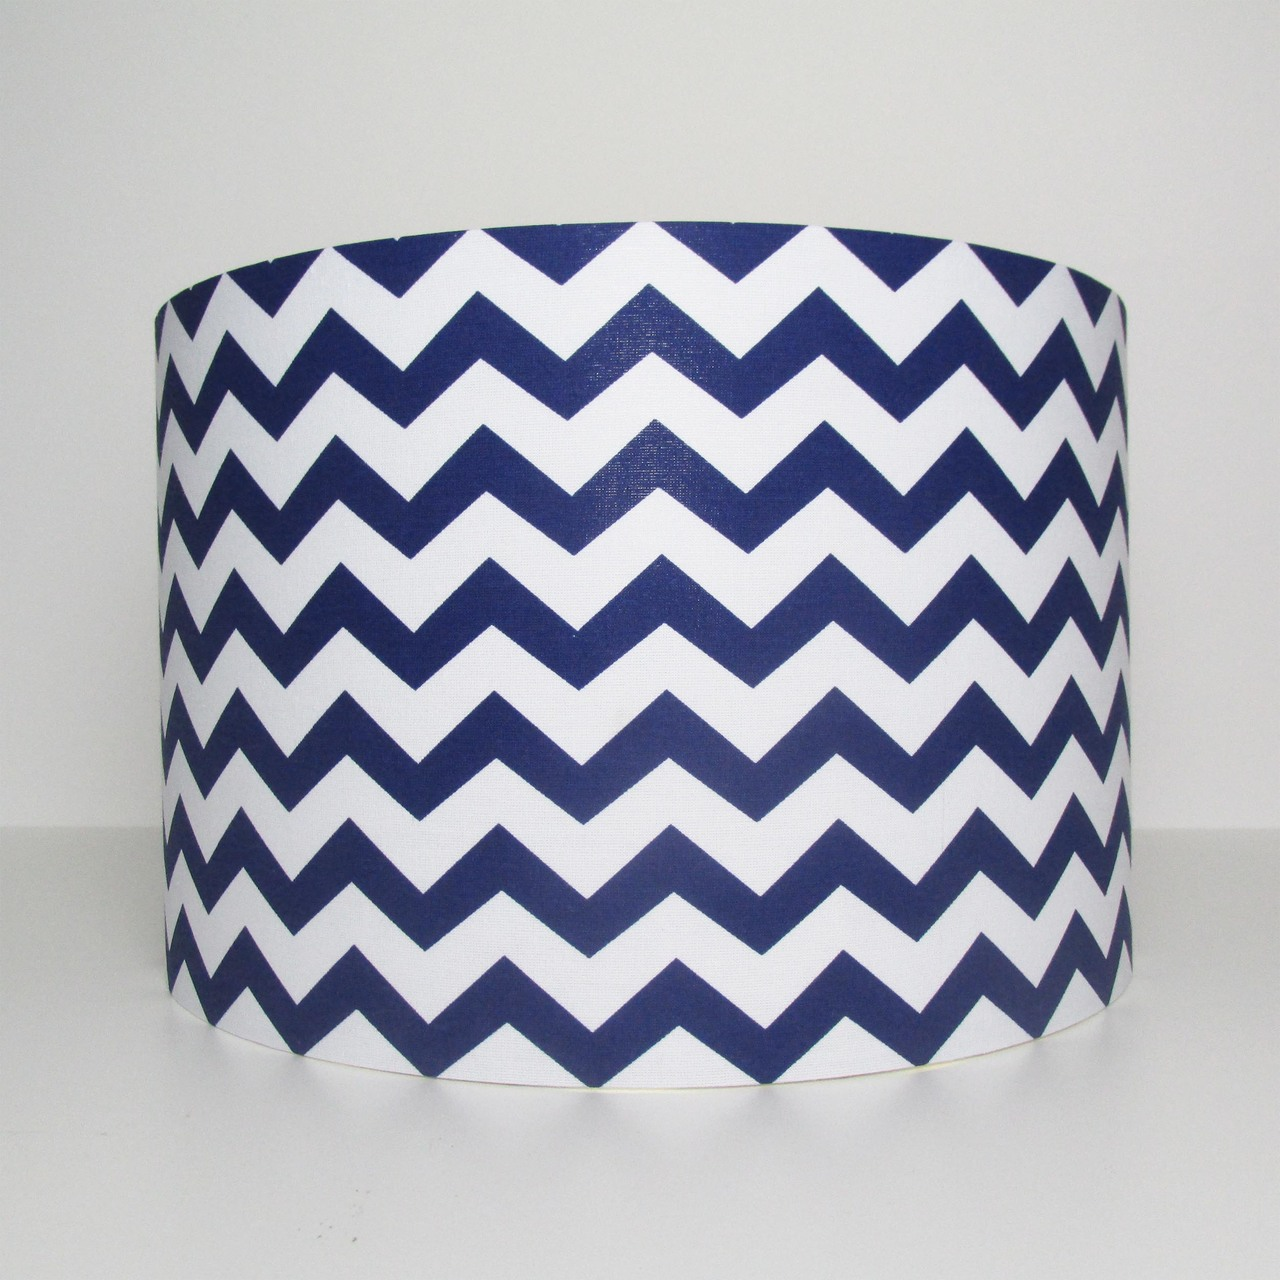 Blue Lampshade with Chevrons Design for a Boys Bedroom